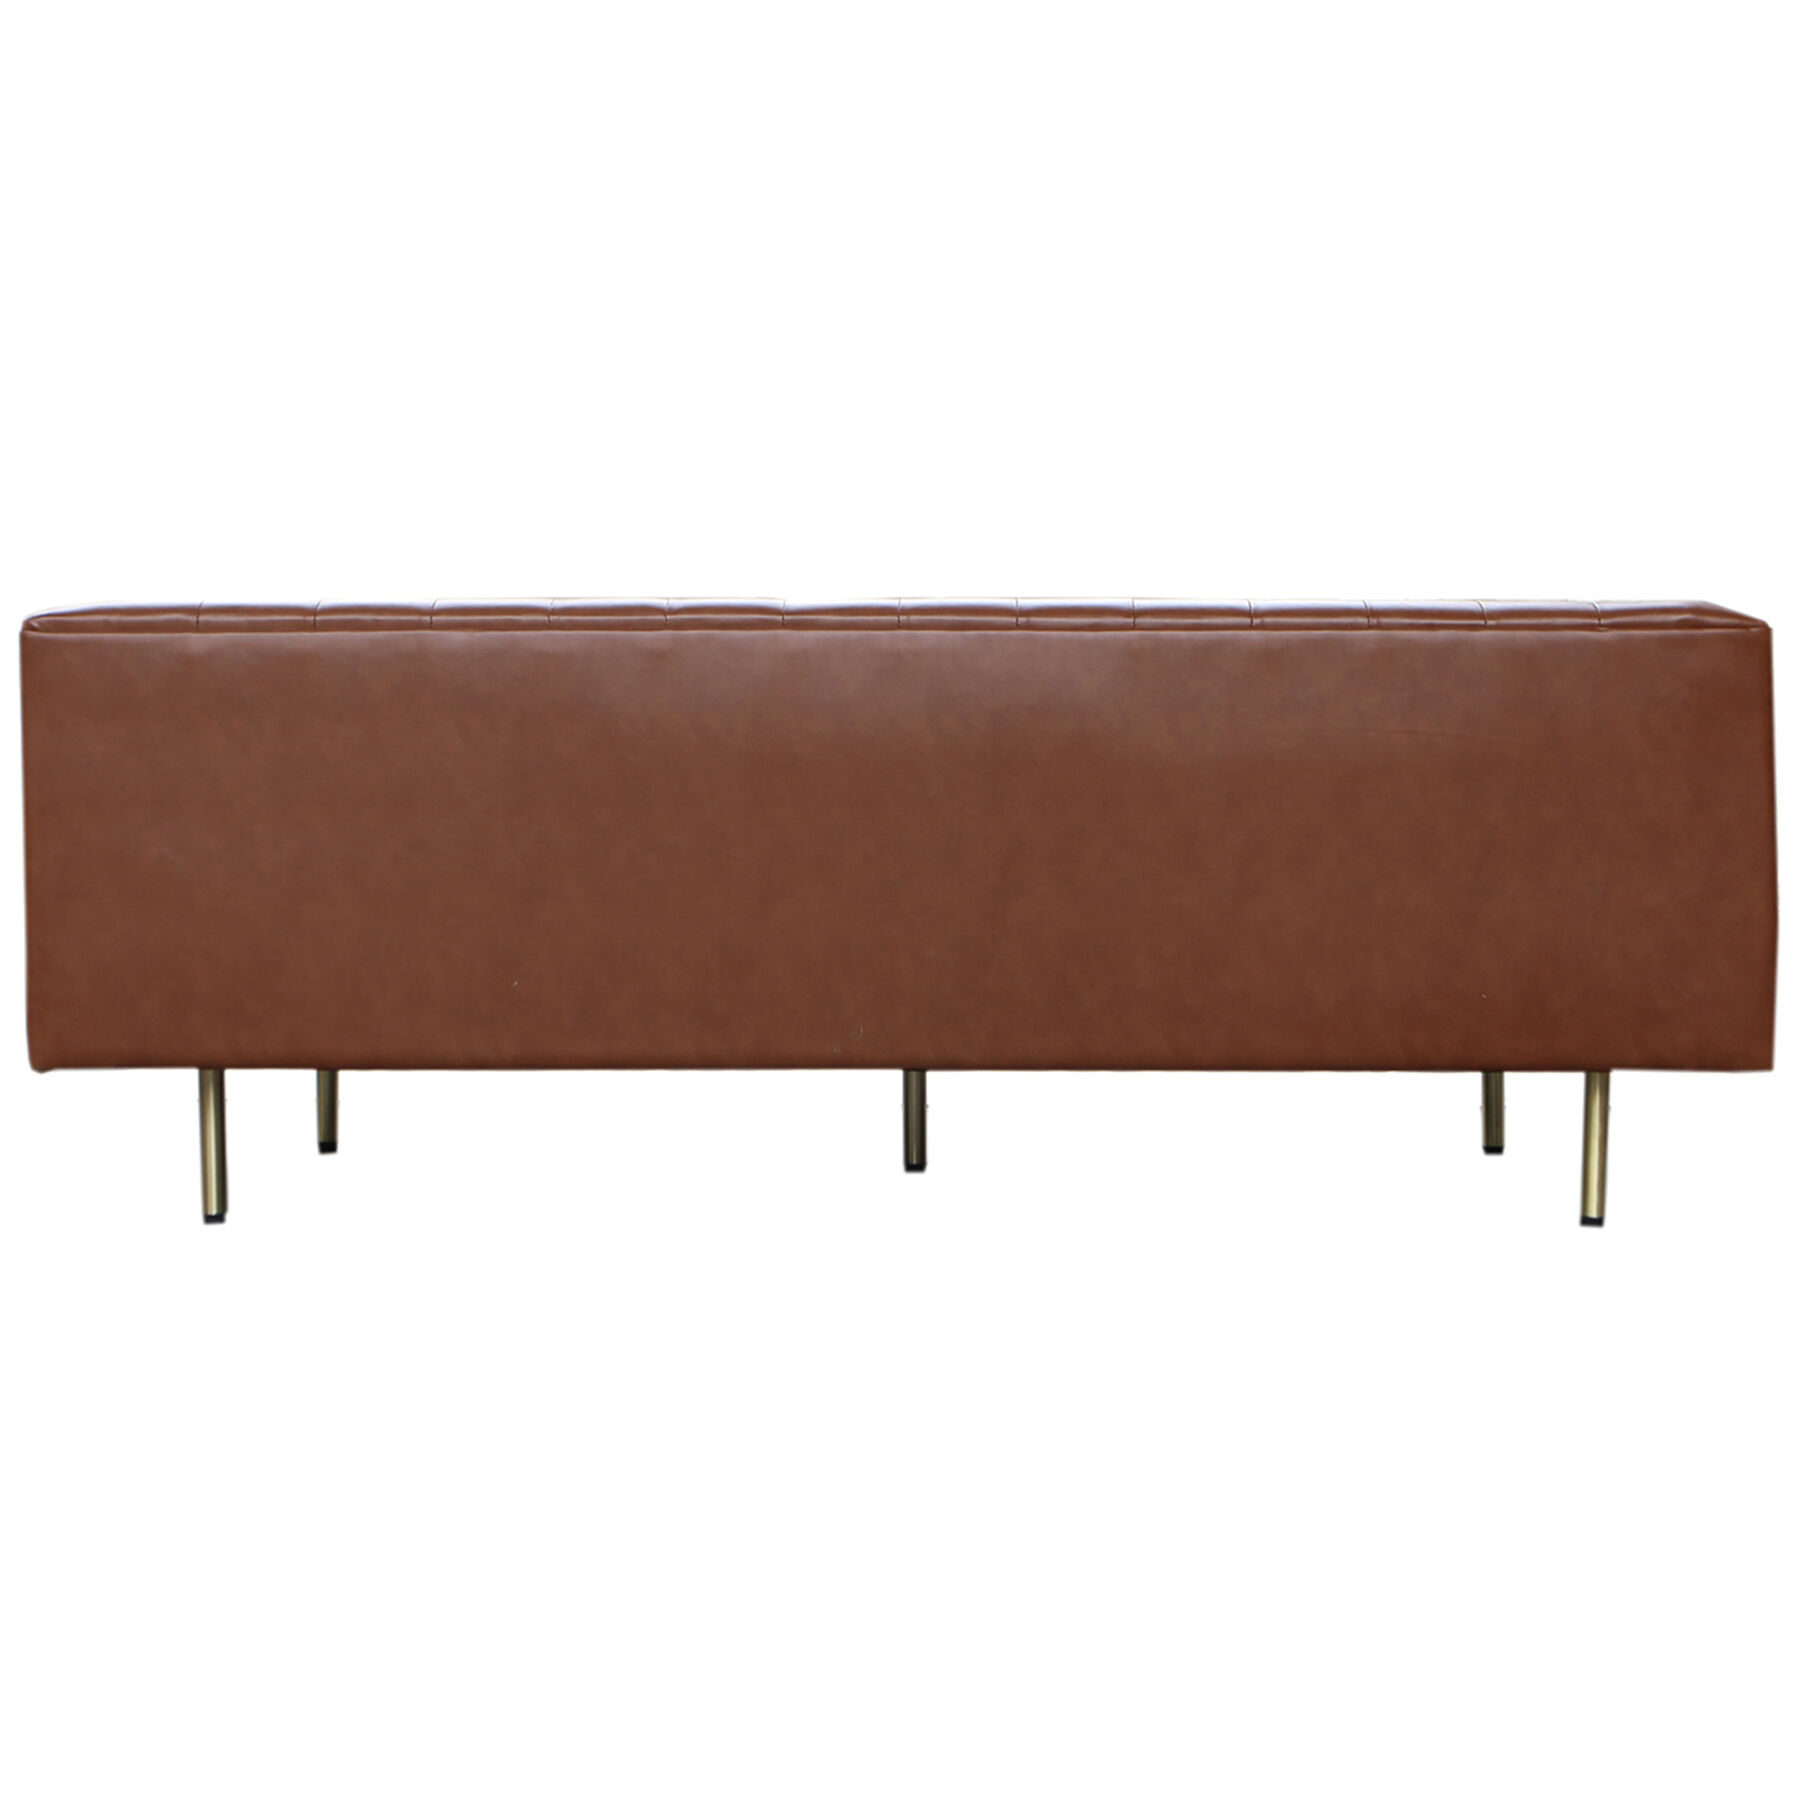 Sofas And Stuff Reviews Hailey Tufted Sofa